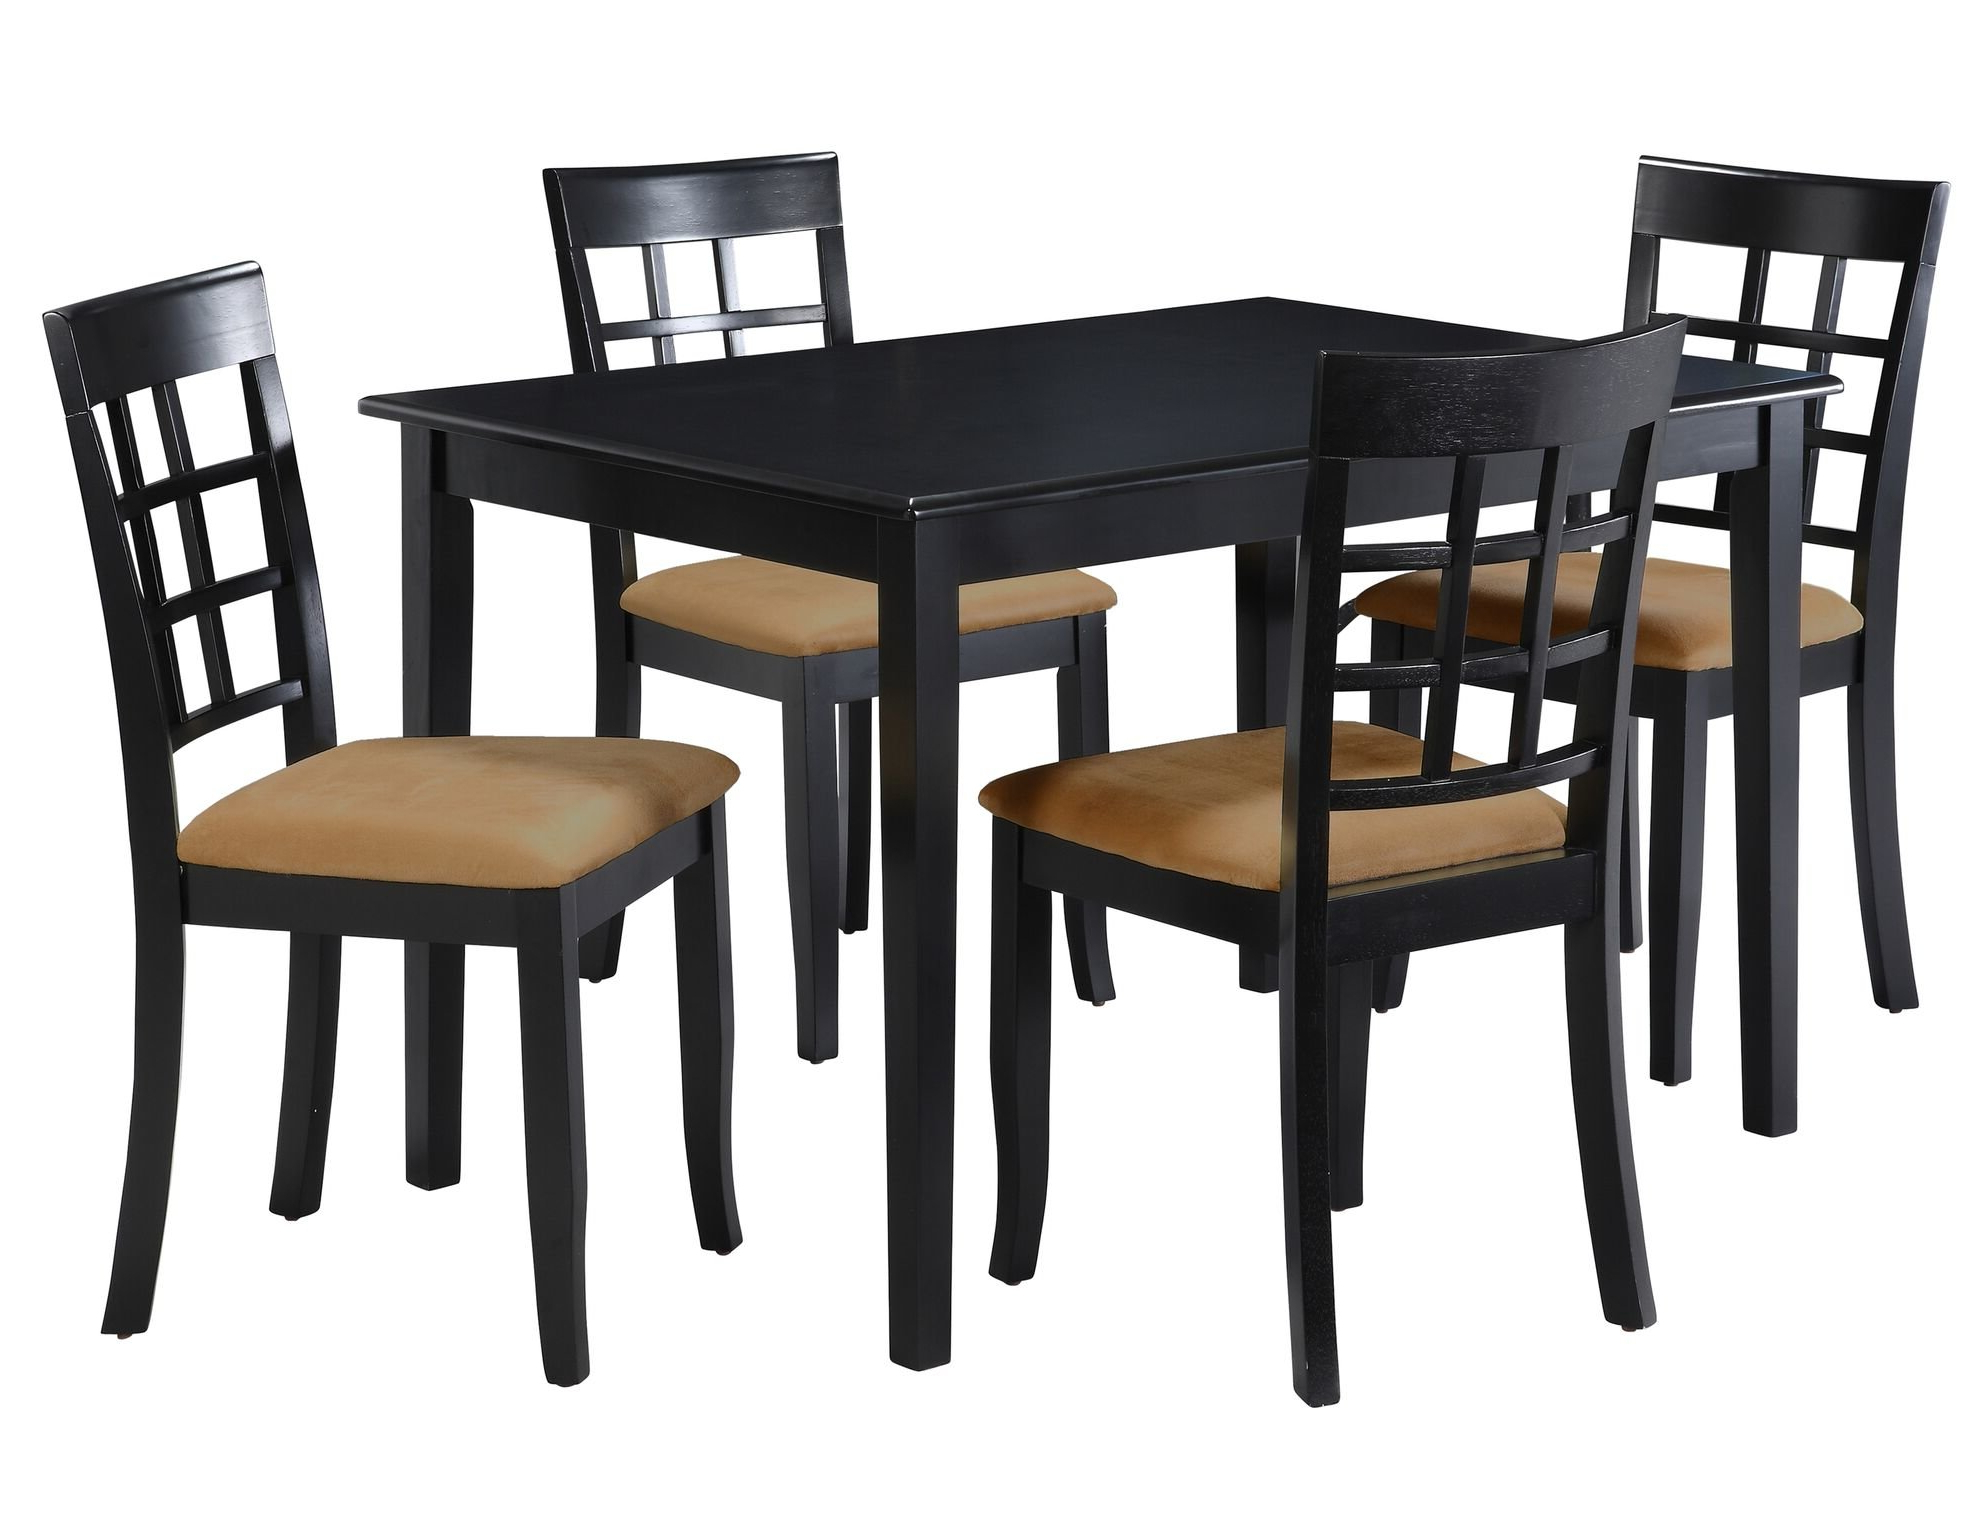 Preferred Pattonsburg 5 Piece Dining Sets Within Oneill 5 Piece Windown Back Dining Set & Reviews (View 19 of 25)